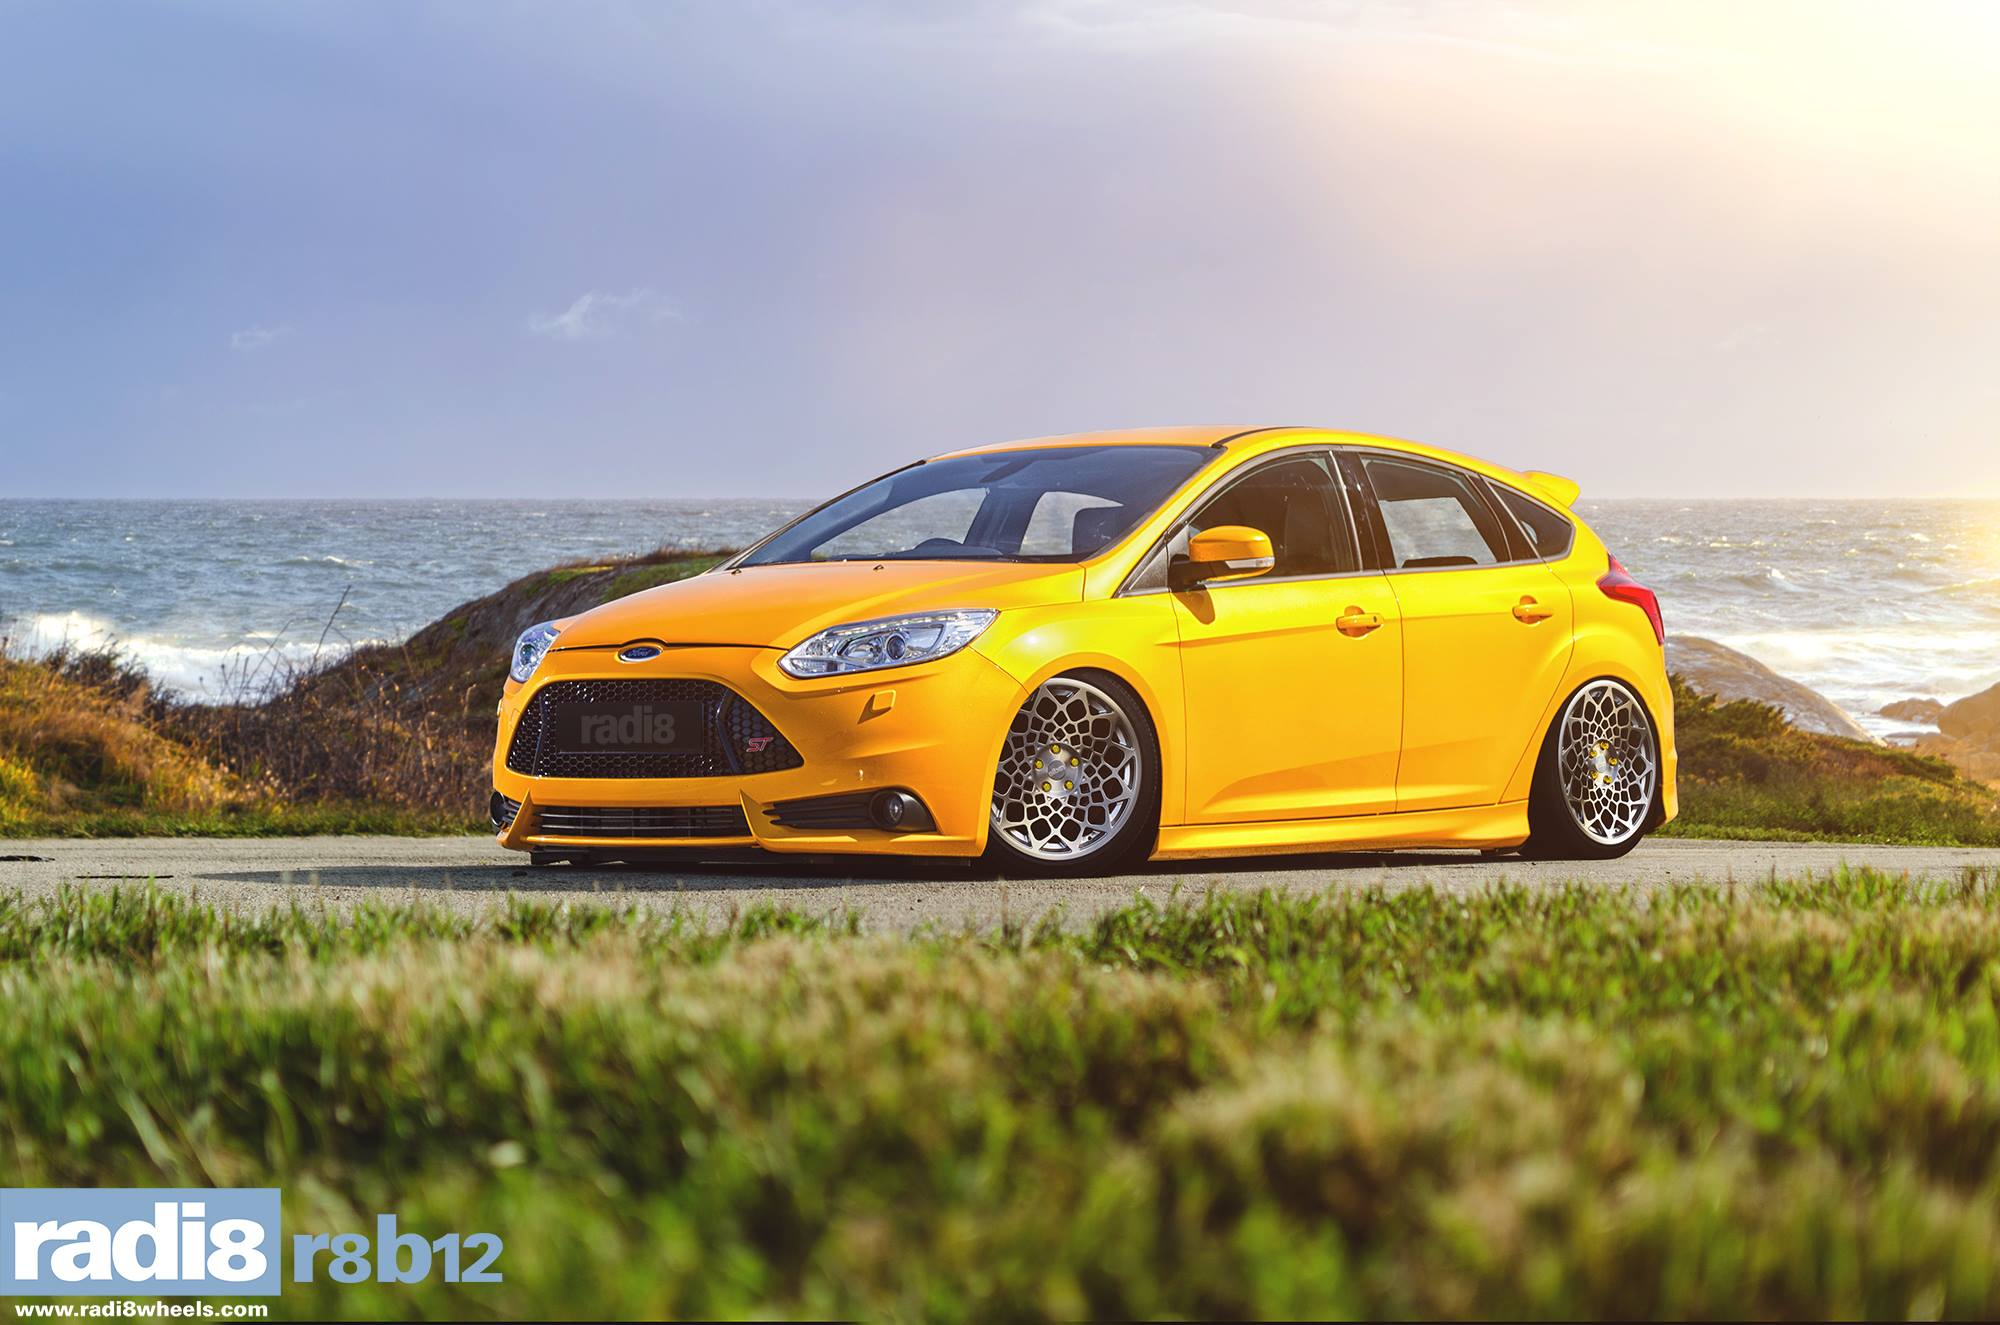 Radi8 R8B12 Wheels - Ford Focus ST